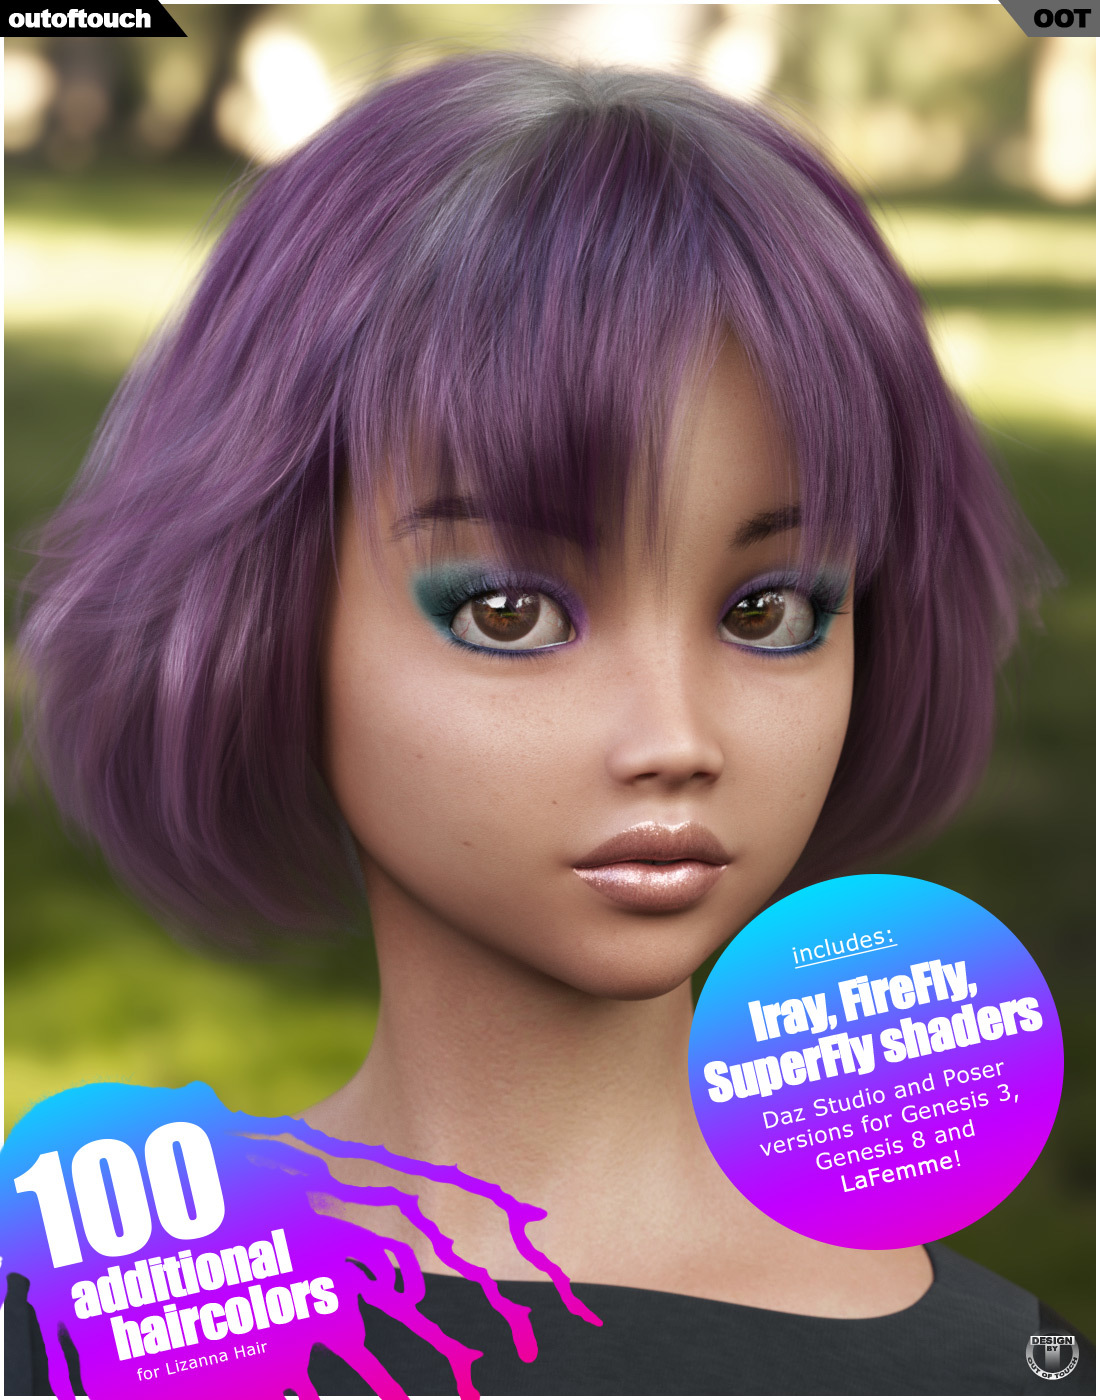 Lizanna Hair Texture XPansion by outoftouch